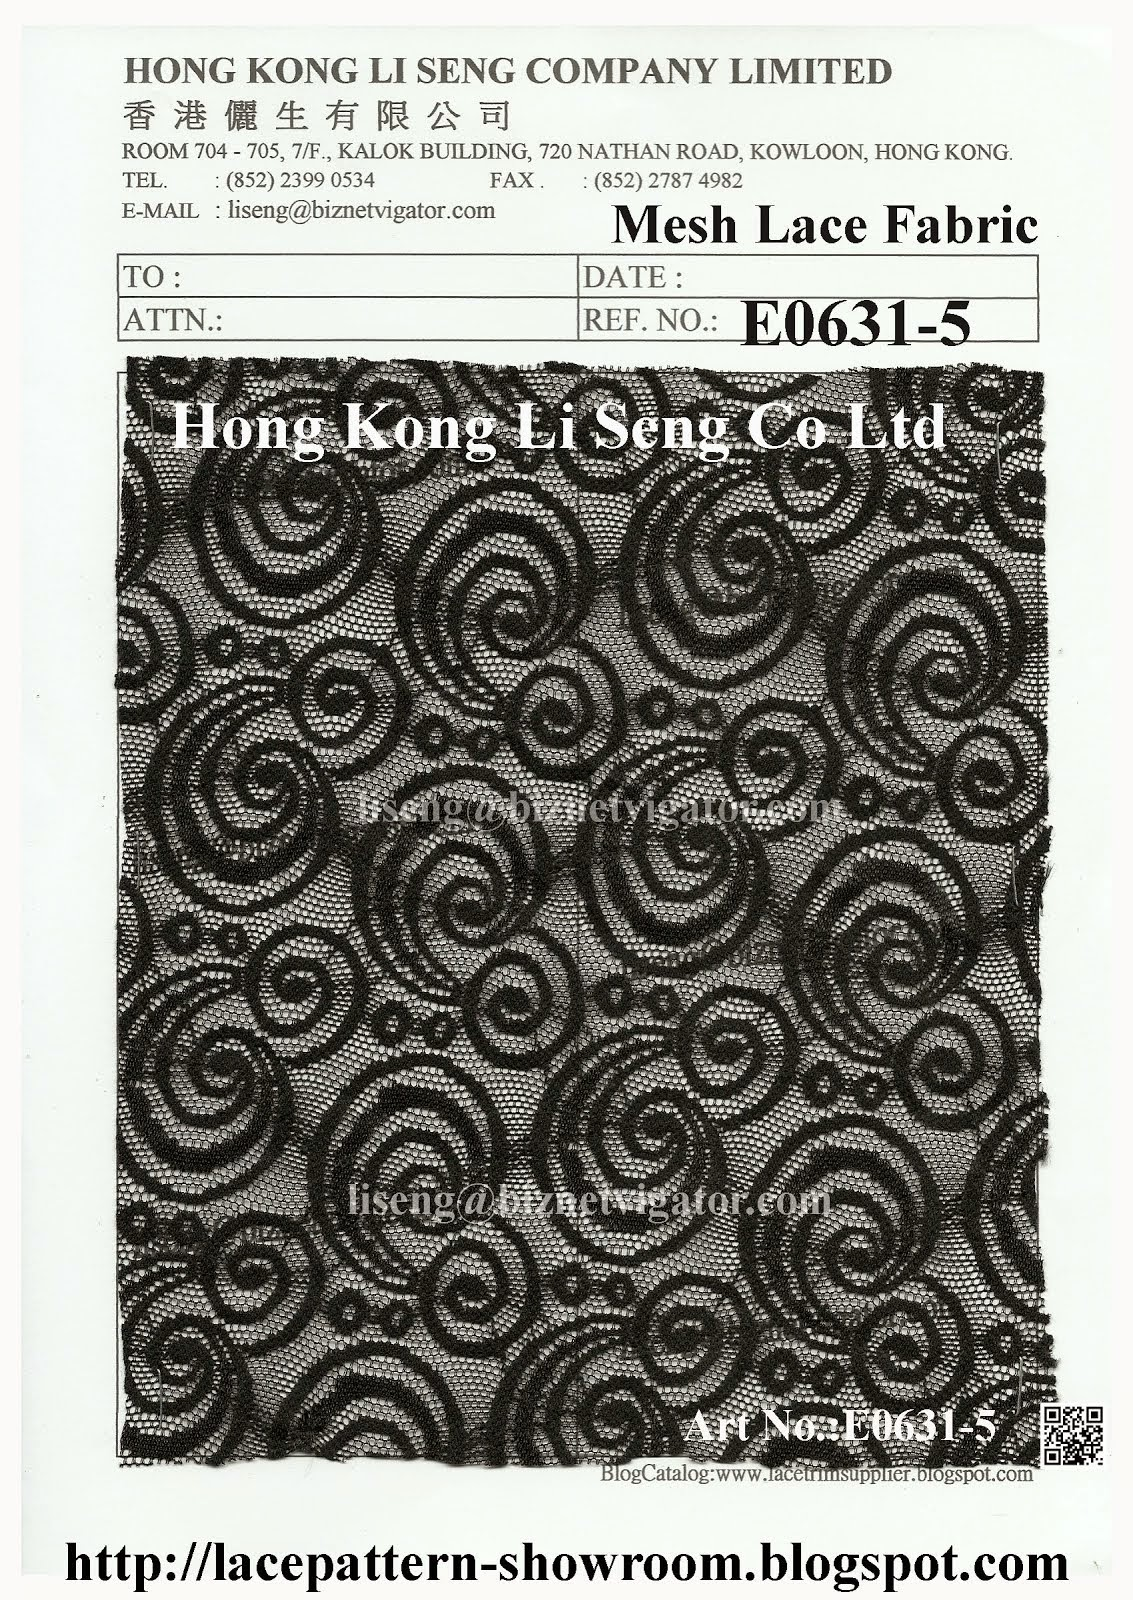 Black Mesh Lace Fabric Wholesaler Manufacturer And Supplier - Hong Kong Li Seng Co Ltd